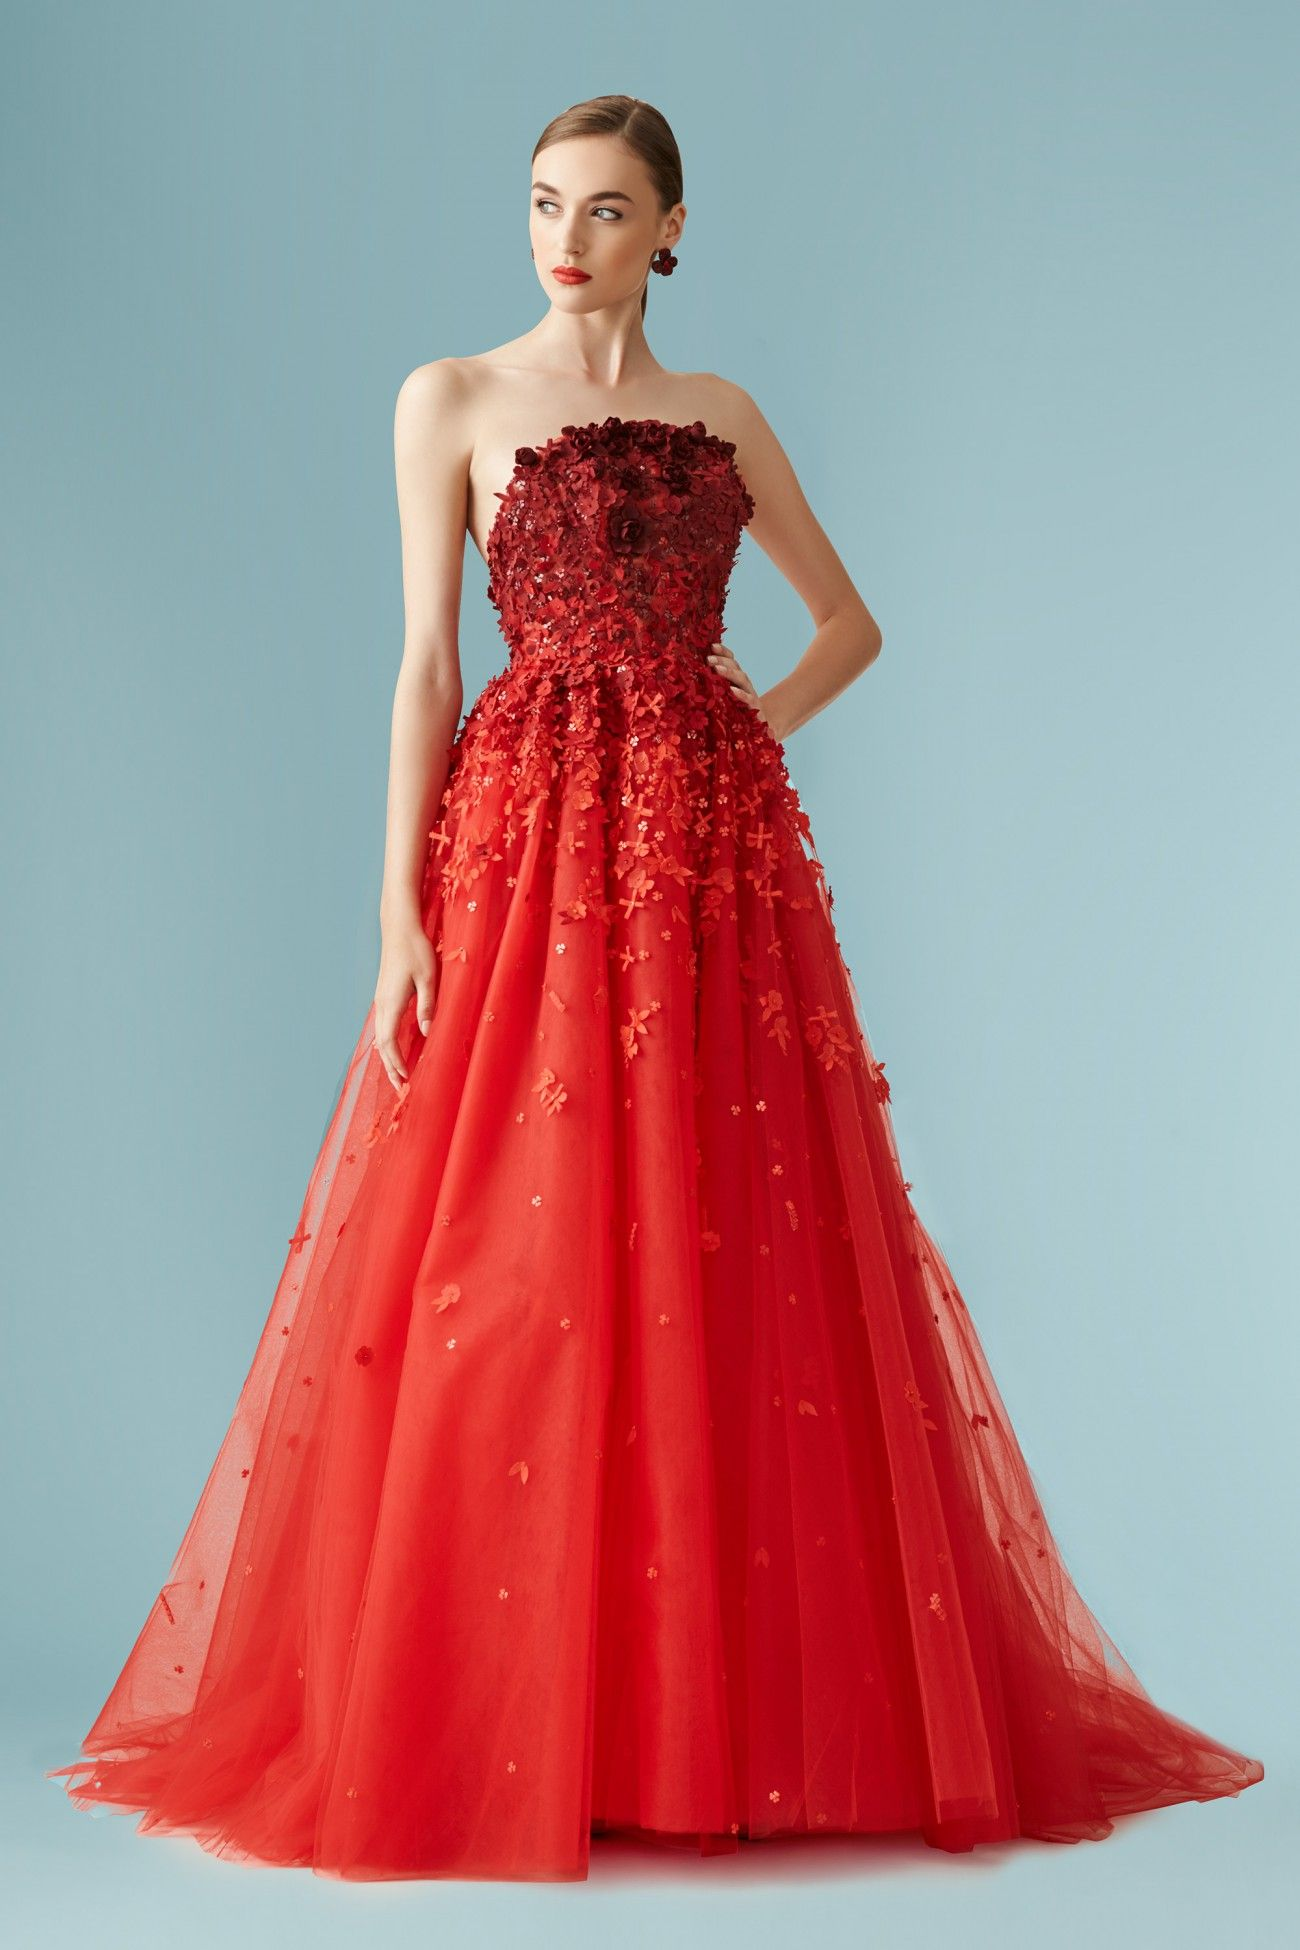 All over embellished strapless tulle gown in red elegantnÍ ŠatiČky